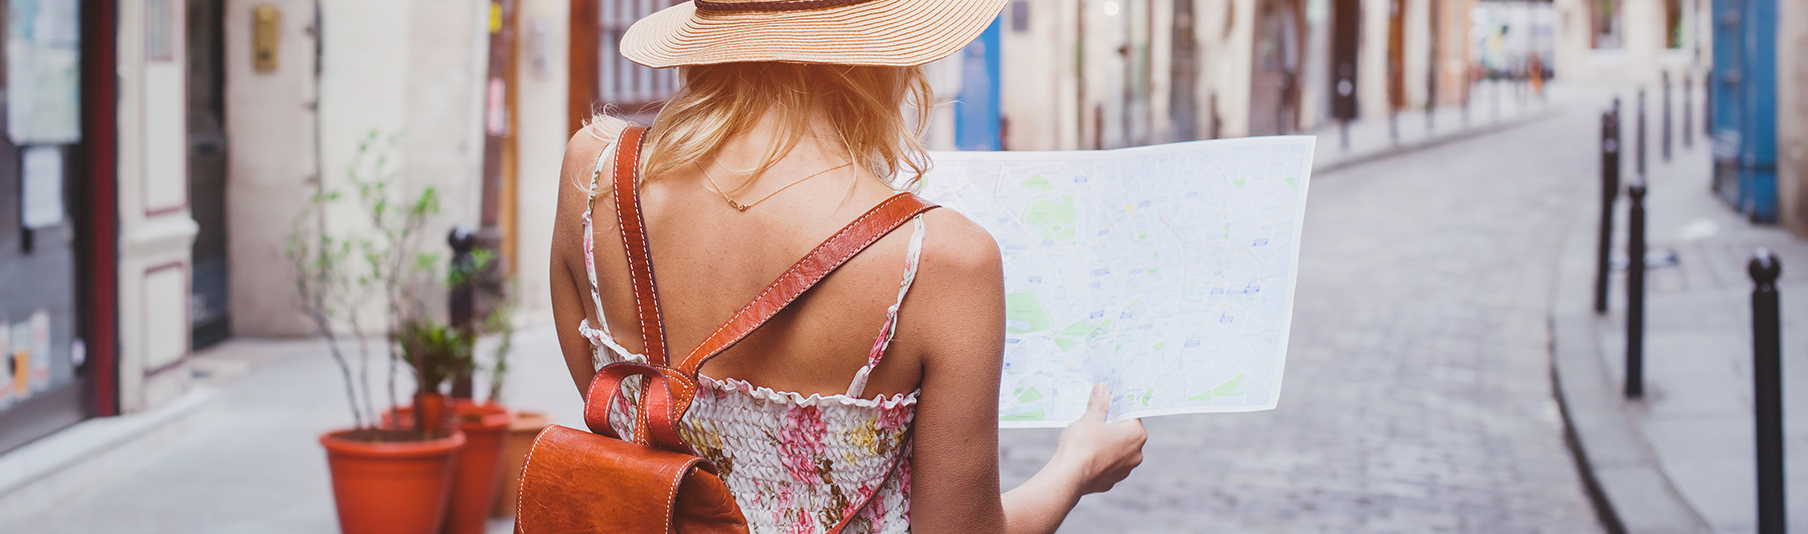 Travel Insurance: A woman on holiday looking at a map while walking the streets